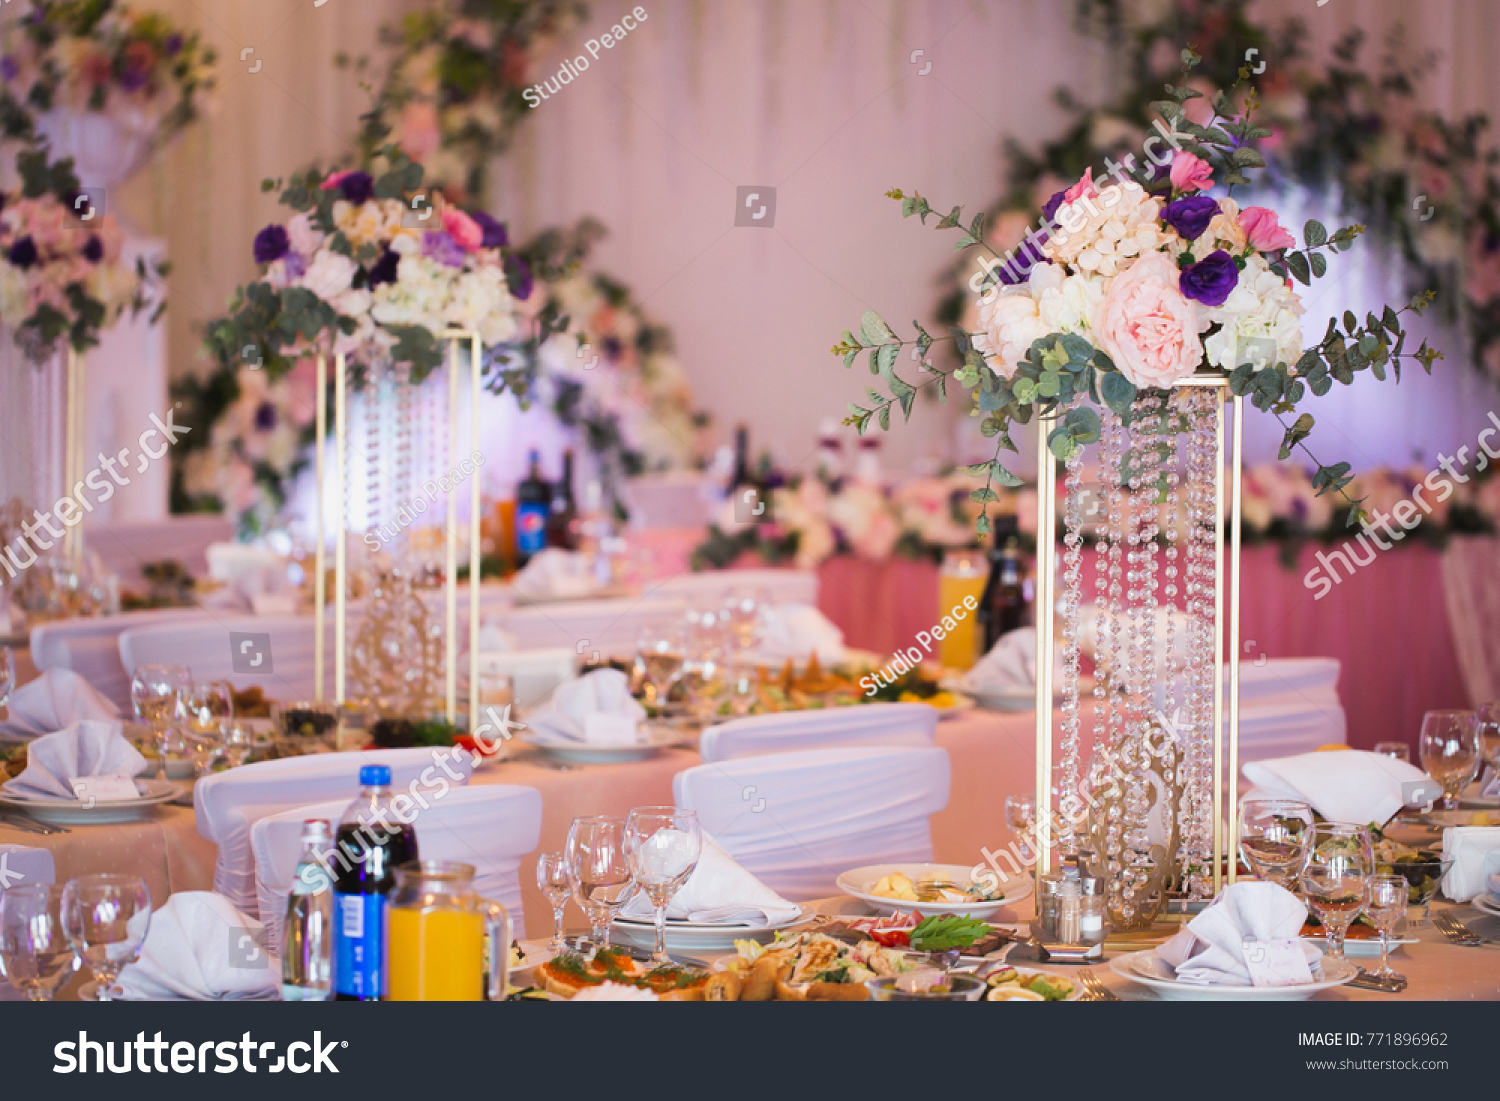 Luxury Decorated With Flowers And A Festive Banquet Hall Restaurant